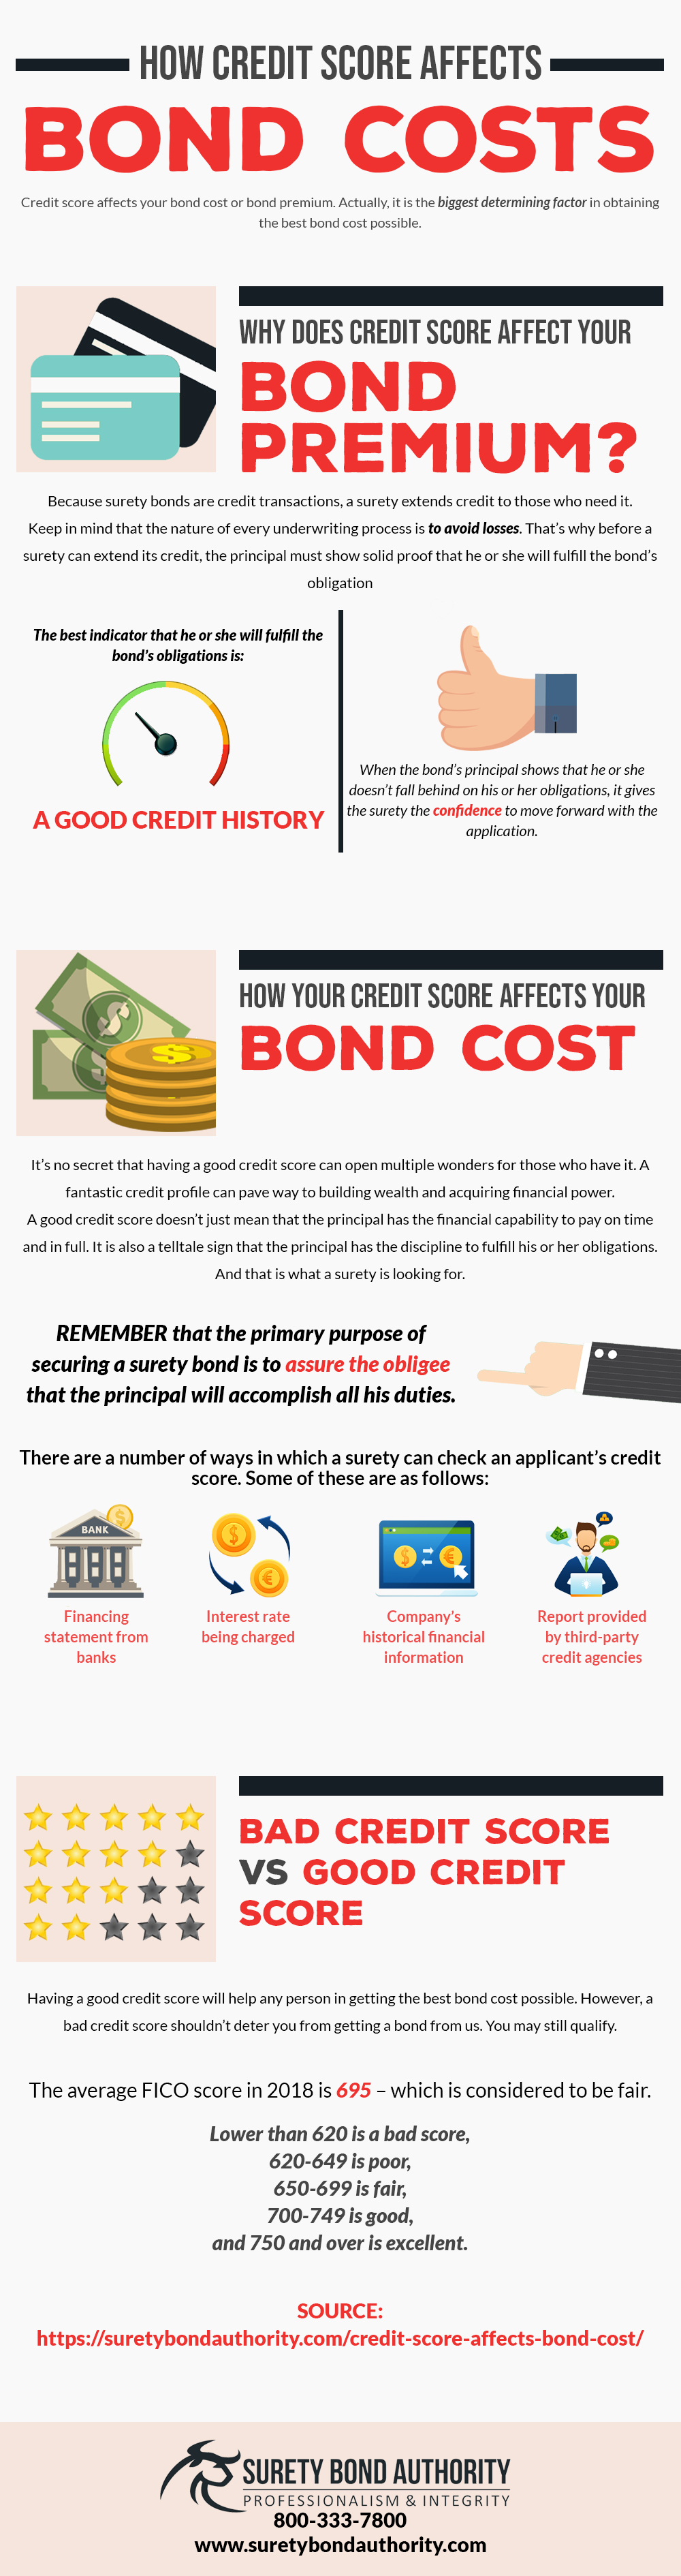 How Credit Score Affects Bond Costs Infographic